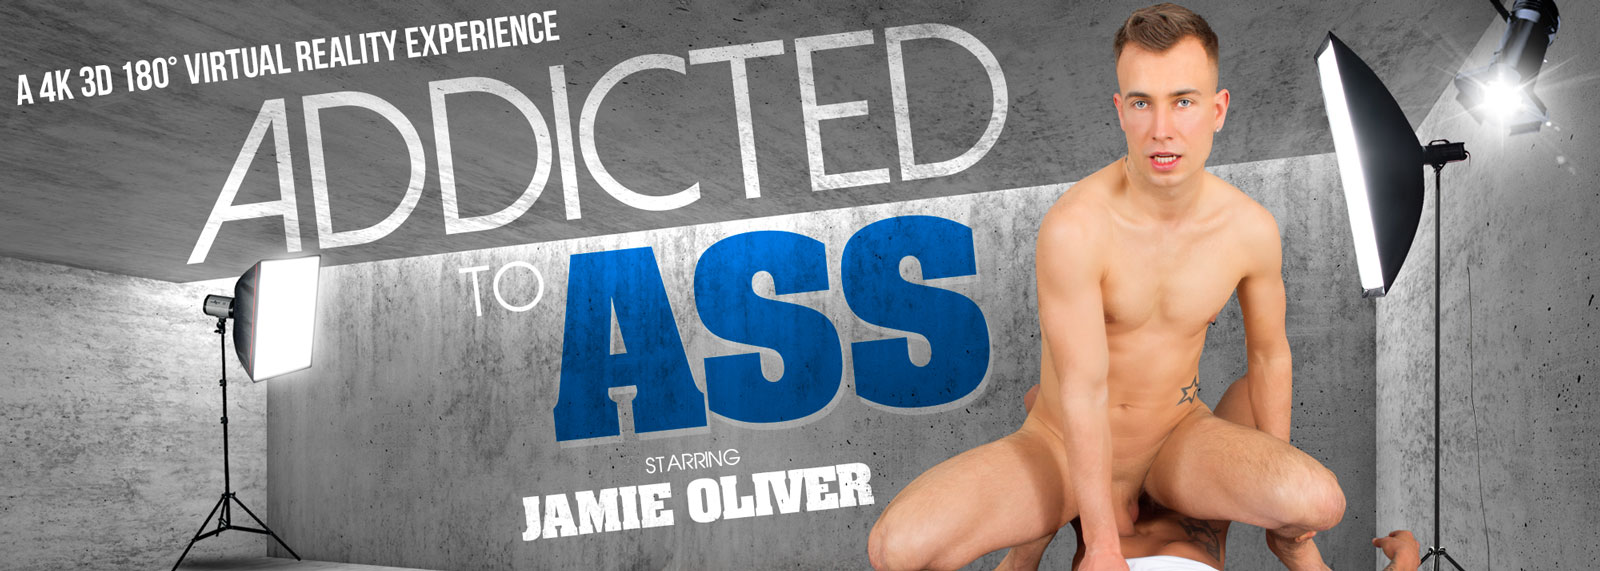 Addicted to Ass - VR Porn Video, Starring Jamie Oliver